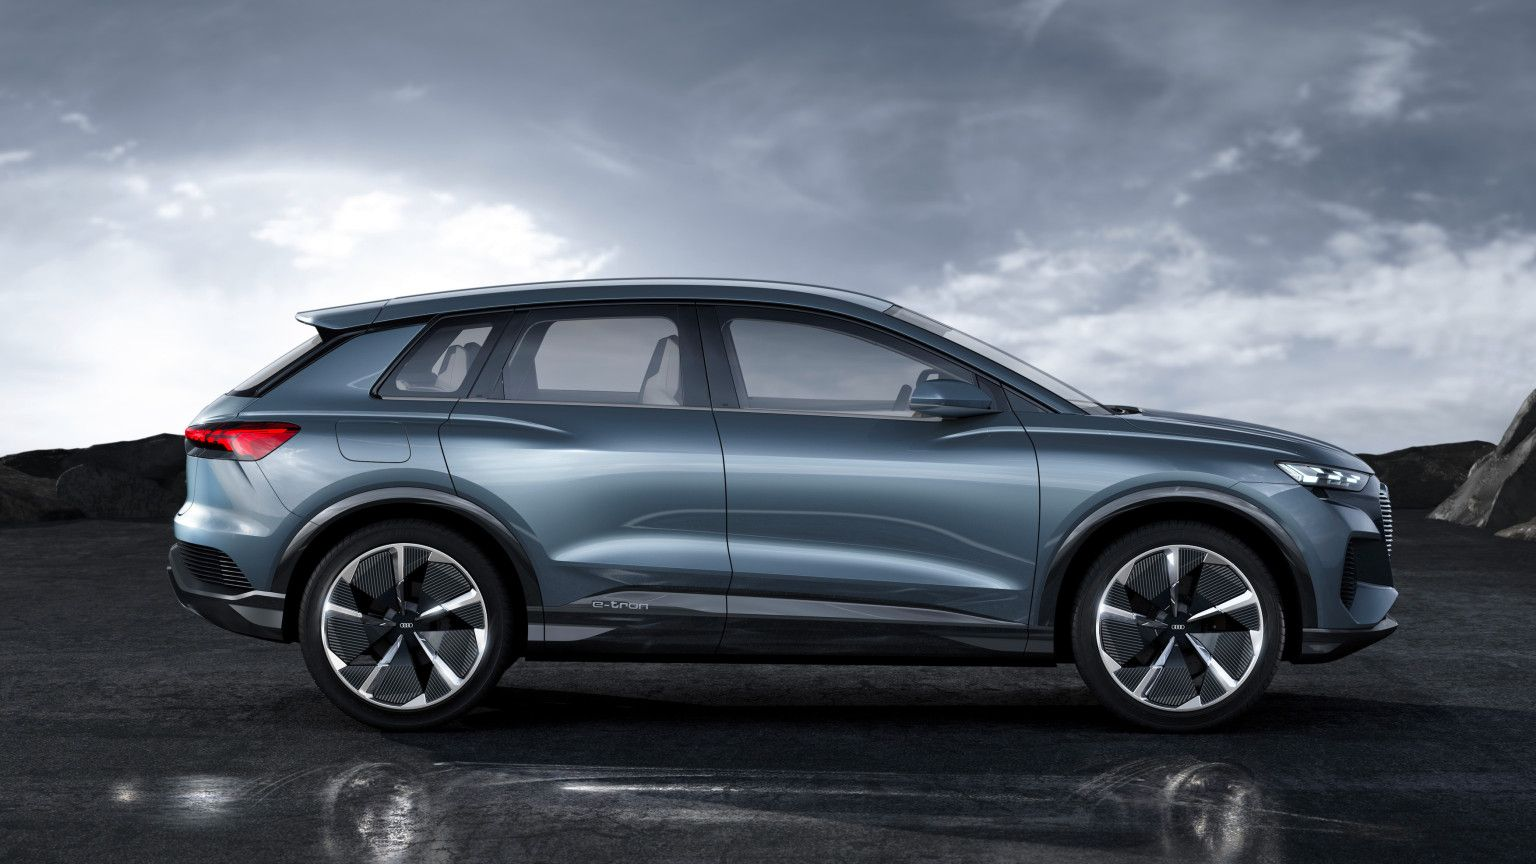 Audi S New Q4 E Tron Concept Is A Compact Electric Crossover With 280 Miles Of Range Techcrunch Audi Q4 E Tron Electric Crossover